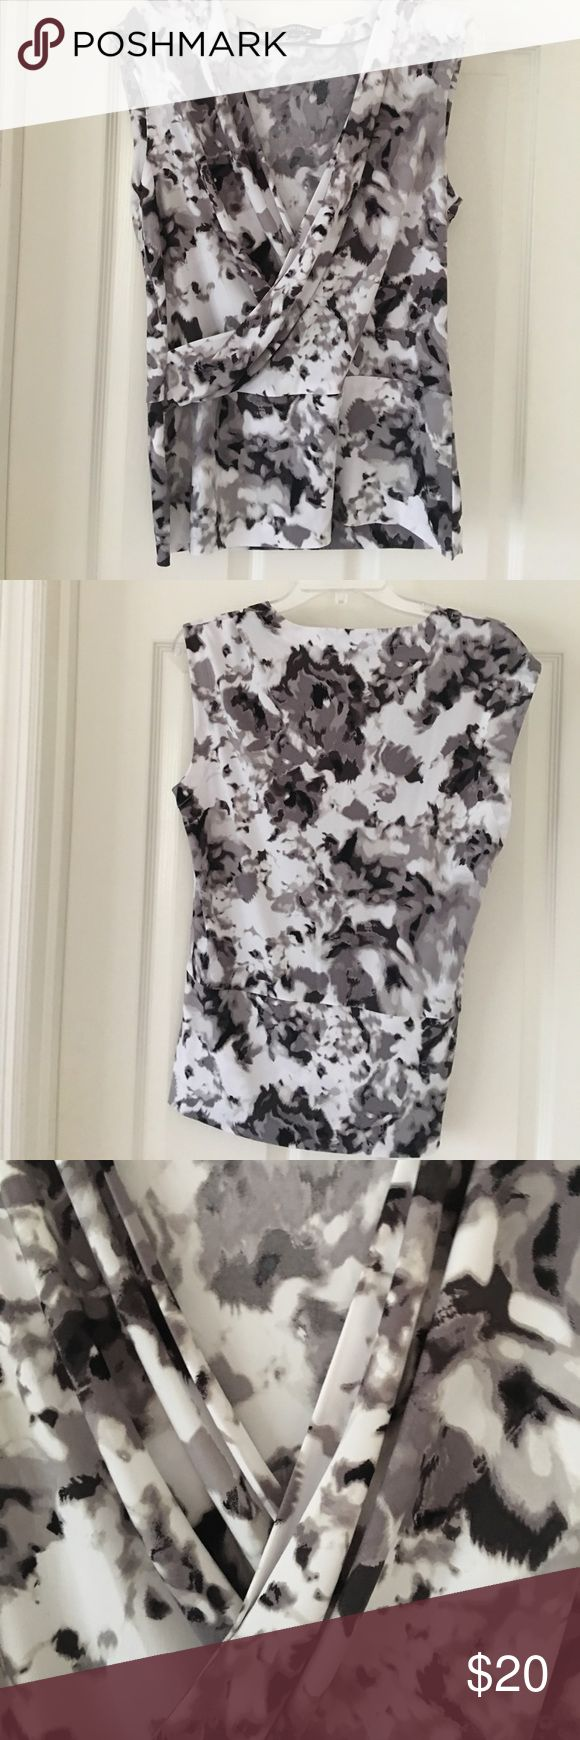 Ellen Tracy Sleeveless Top Size Large Beautiful Ellen Tracy Shirt Black/Grey/White Size Large.   Looks great with Jeans, Skirts and Dressy Shorts. NWOT Ellen Tracy Tops